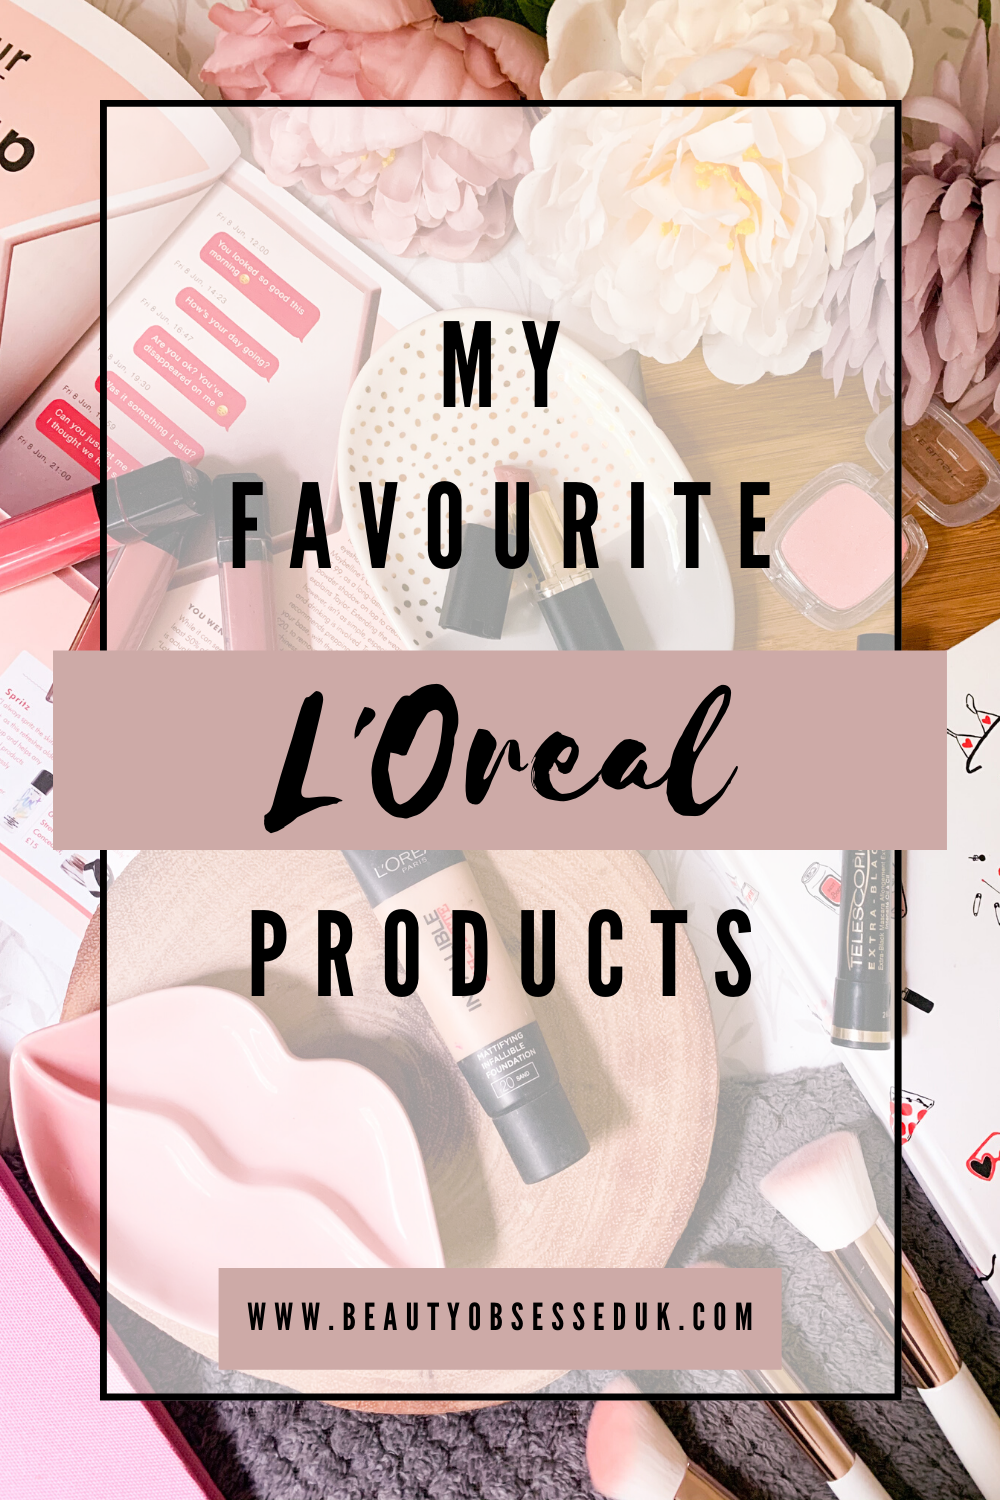 My Favourite L'Oreal Products Pinterest